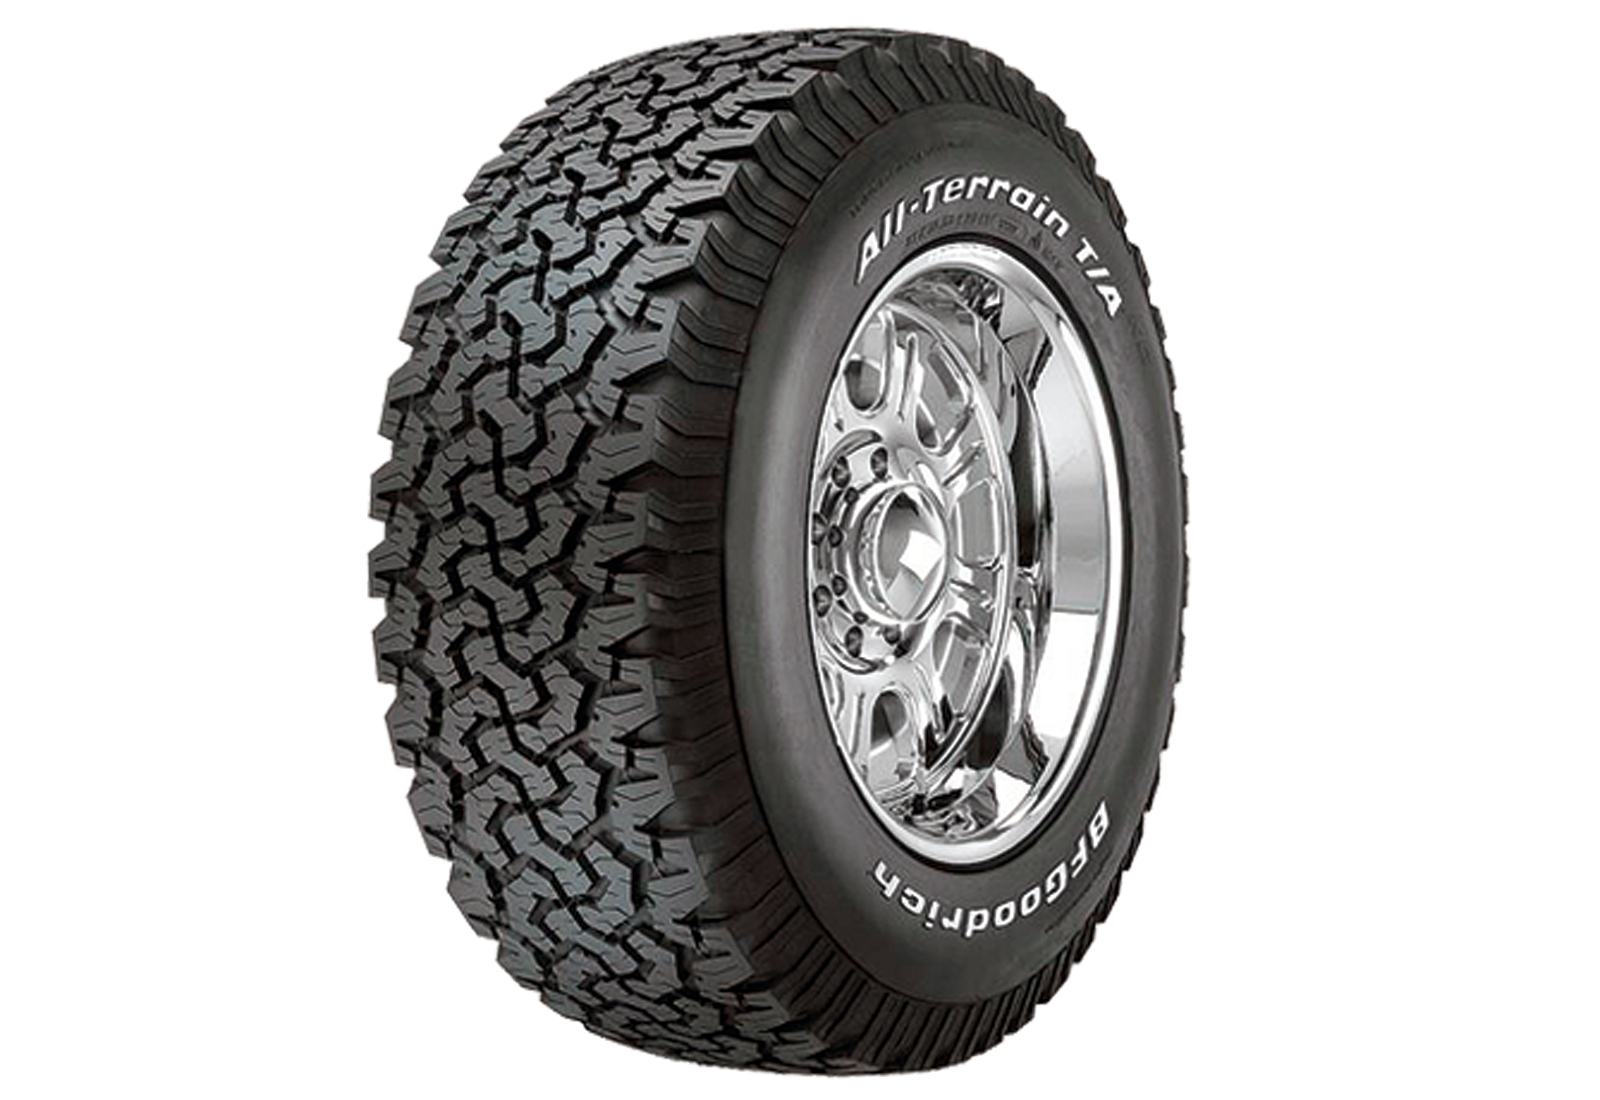 BF GOODRICH ALL TERRAIN T/A KO 215/70 R16 100R